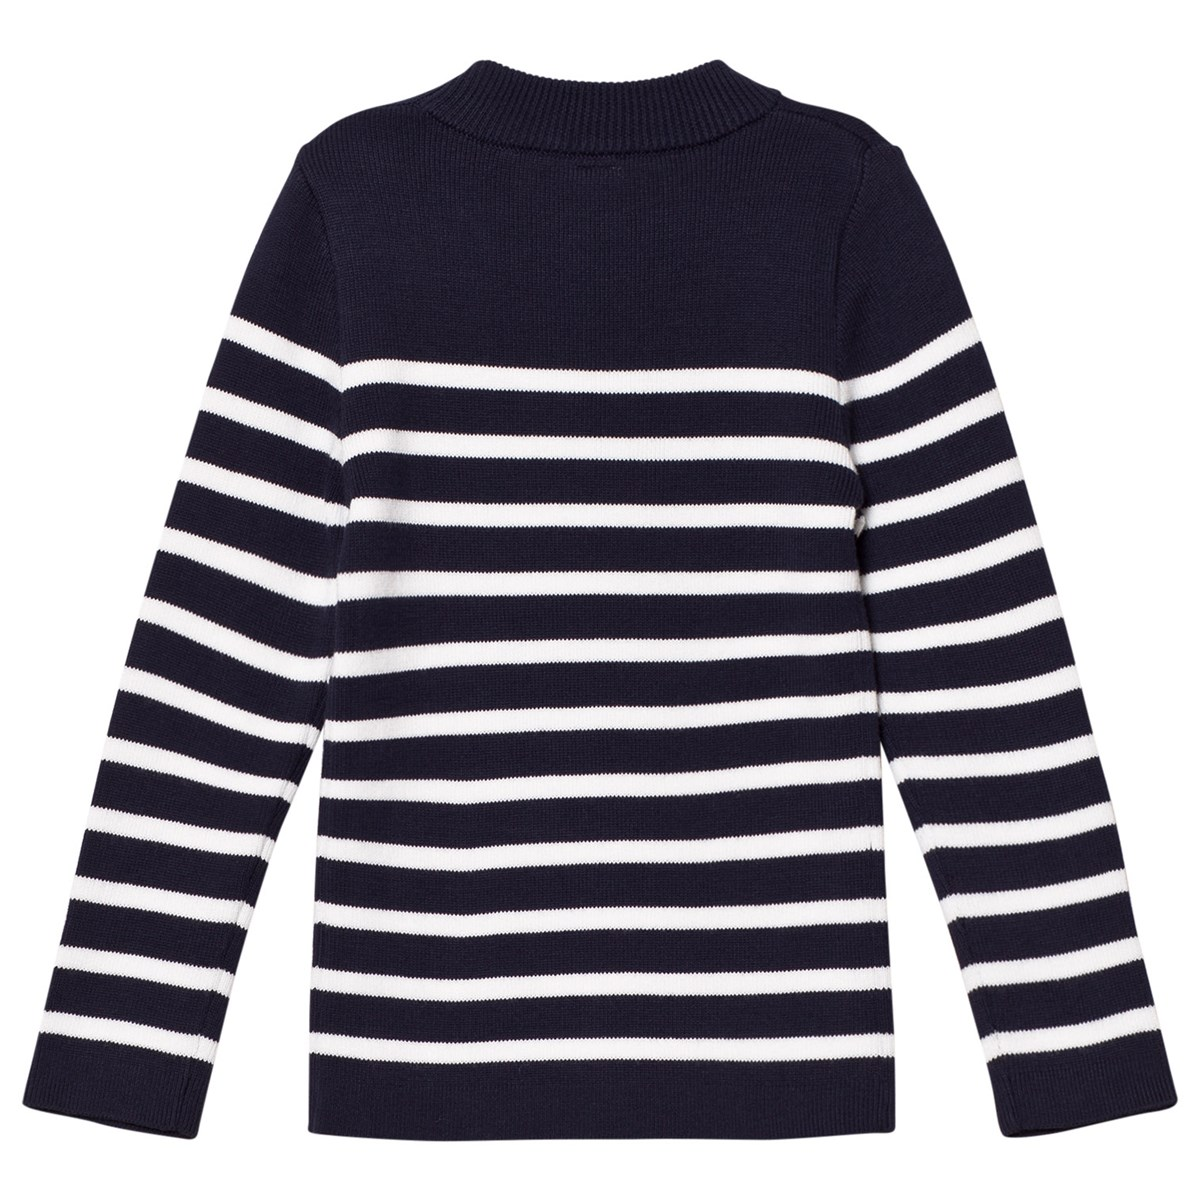 Petit Bateau Marine White Striped Nautical Sweater Babyshopcom Attipas Navy